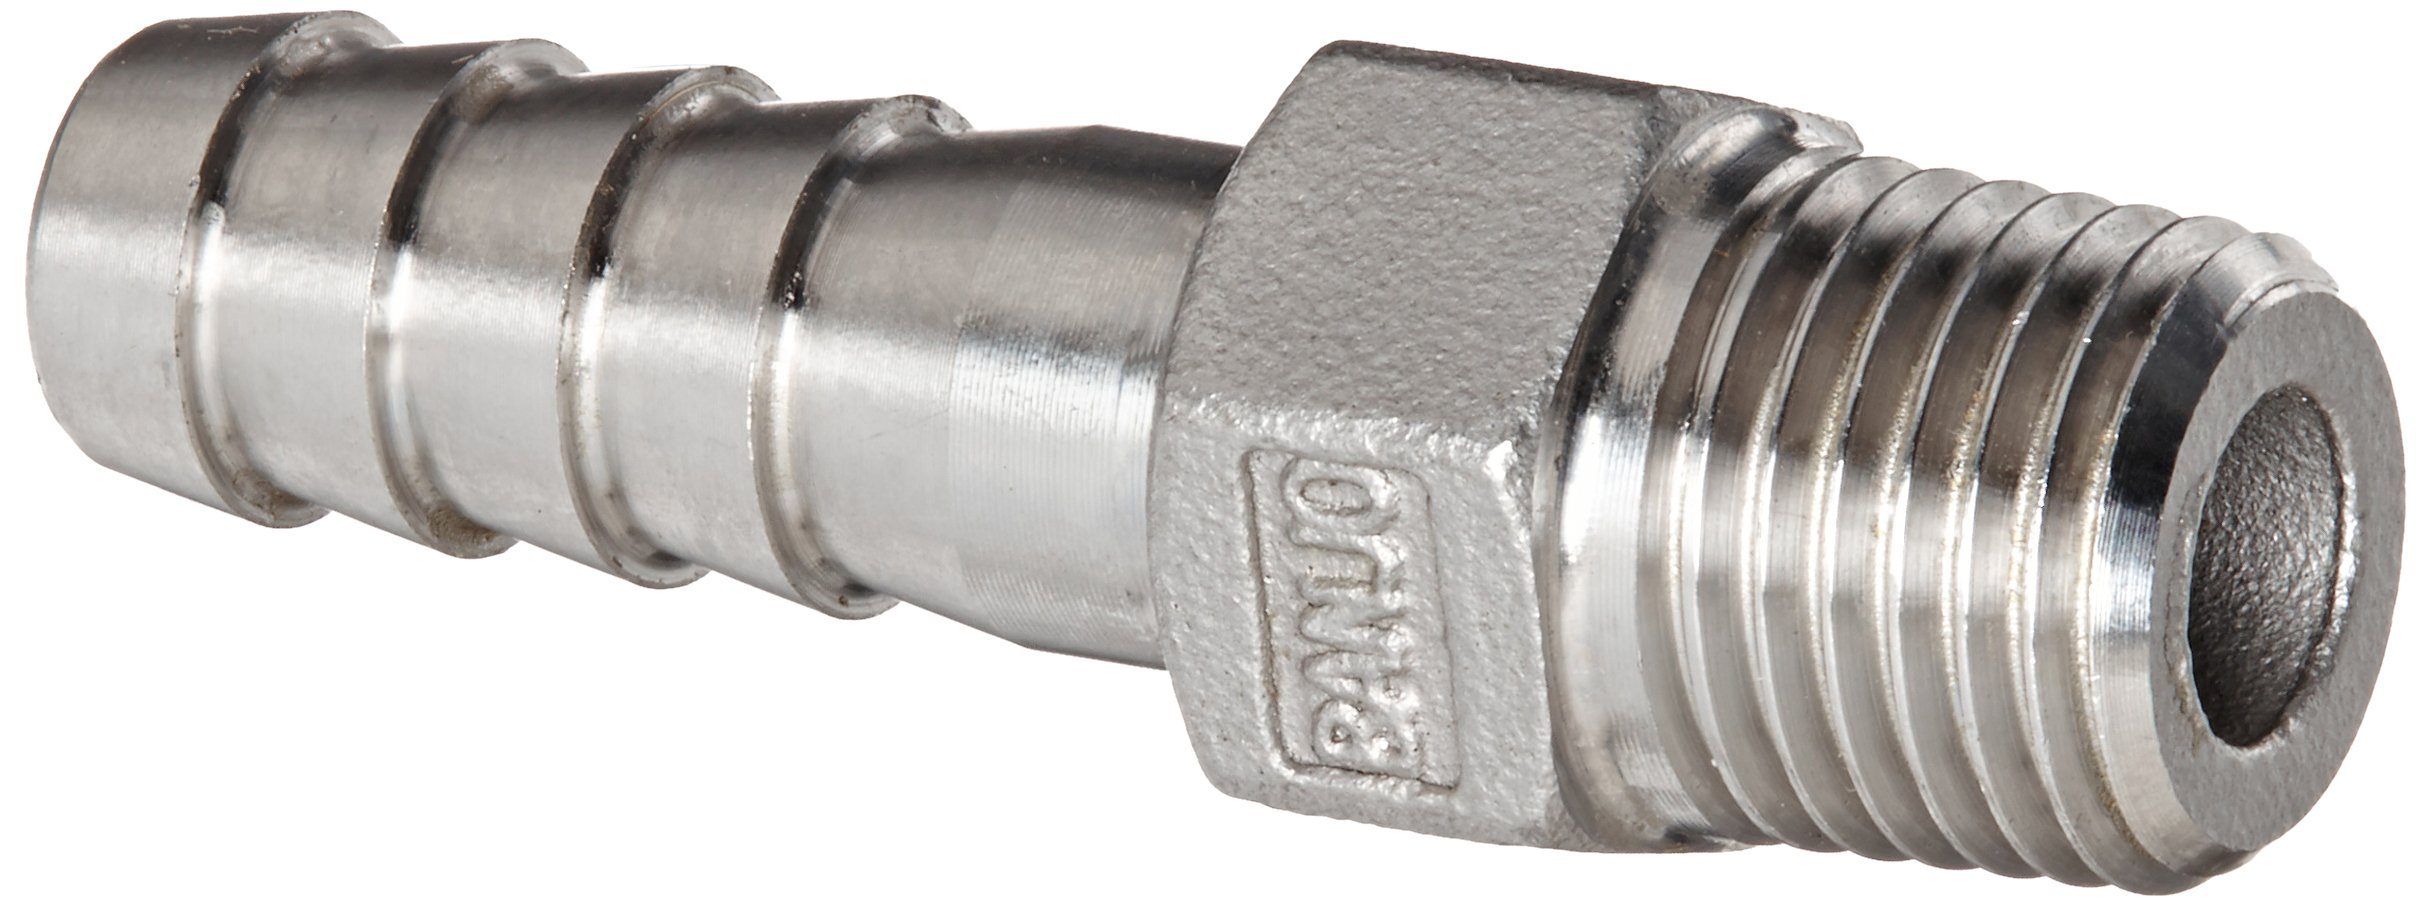 Banjo HB025-038SS Stainless Steel 316 Hose Fitting, Adapter, 1/4'' NPT Male x 3/8'' Barbed